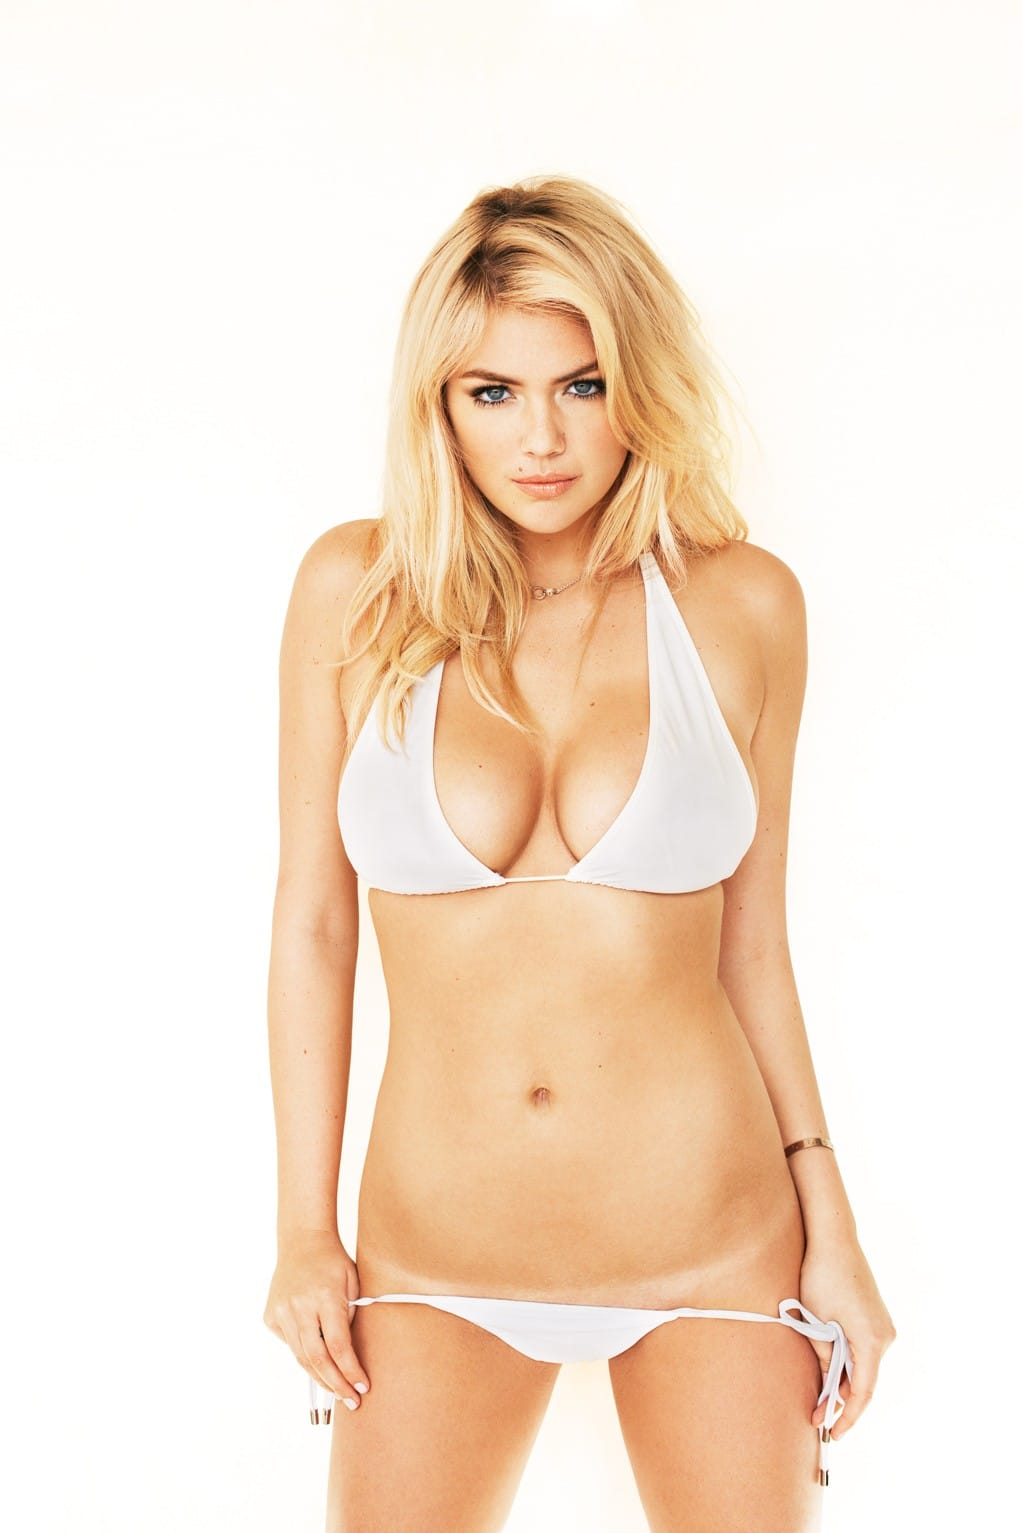 Picture of kate upton kate upton voltagebd Choice Image